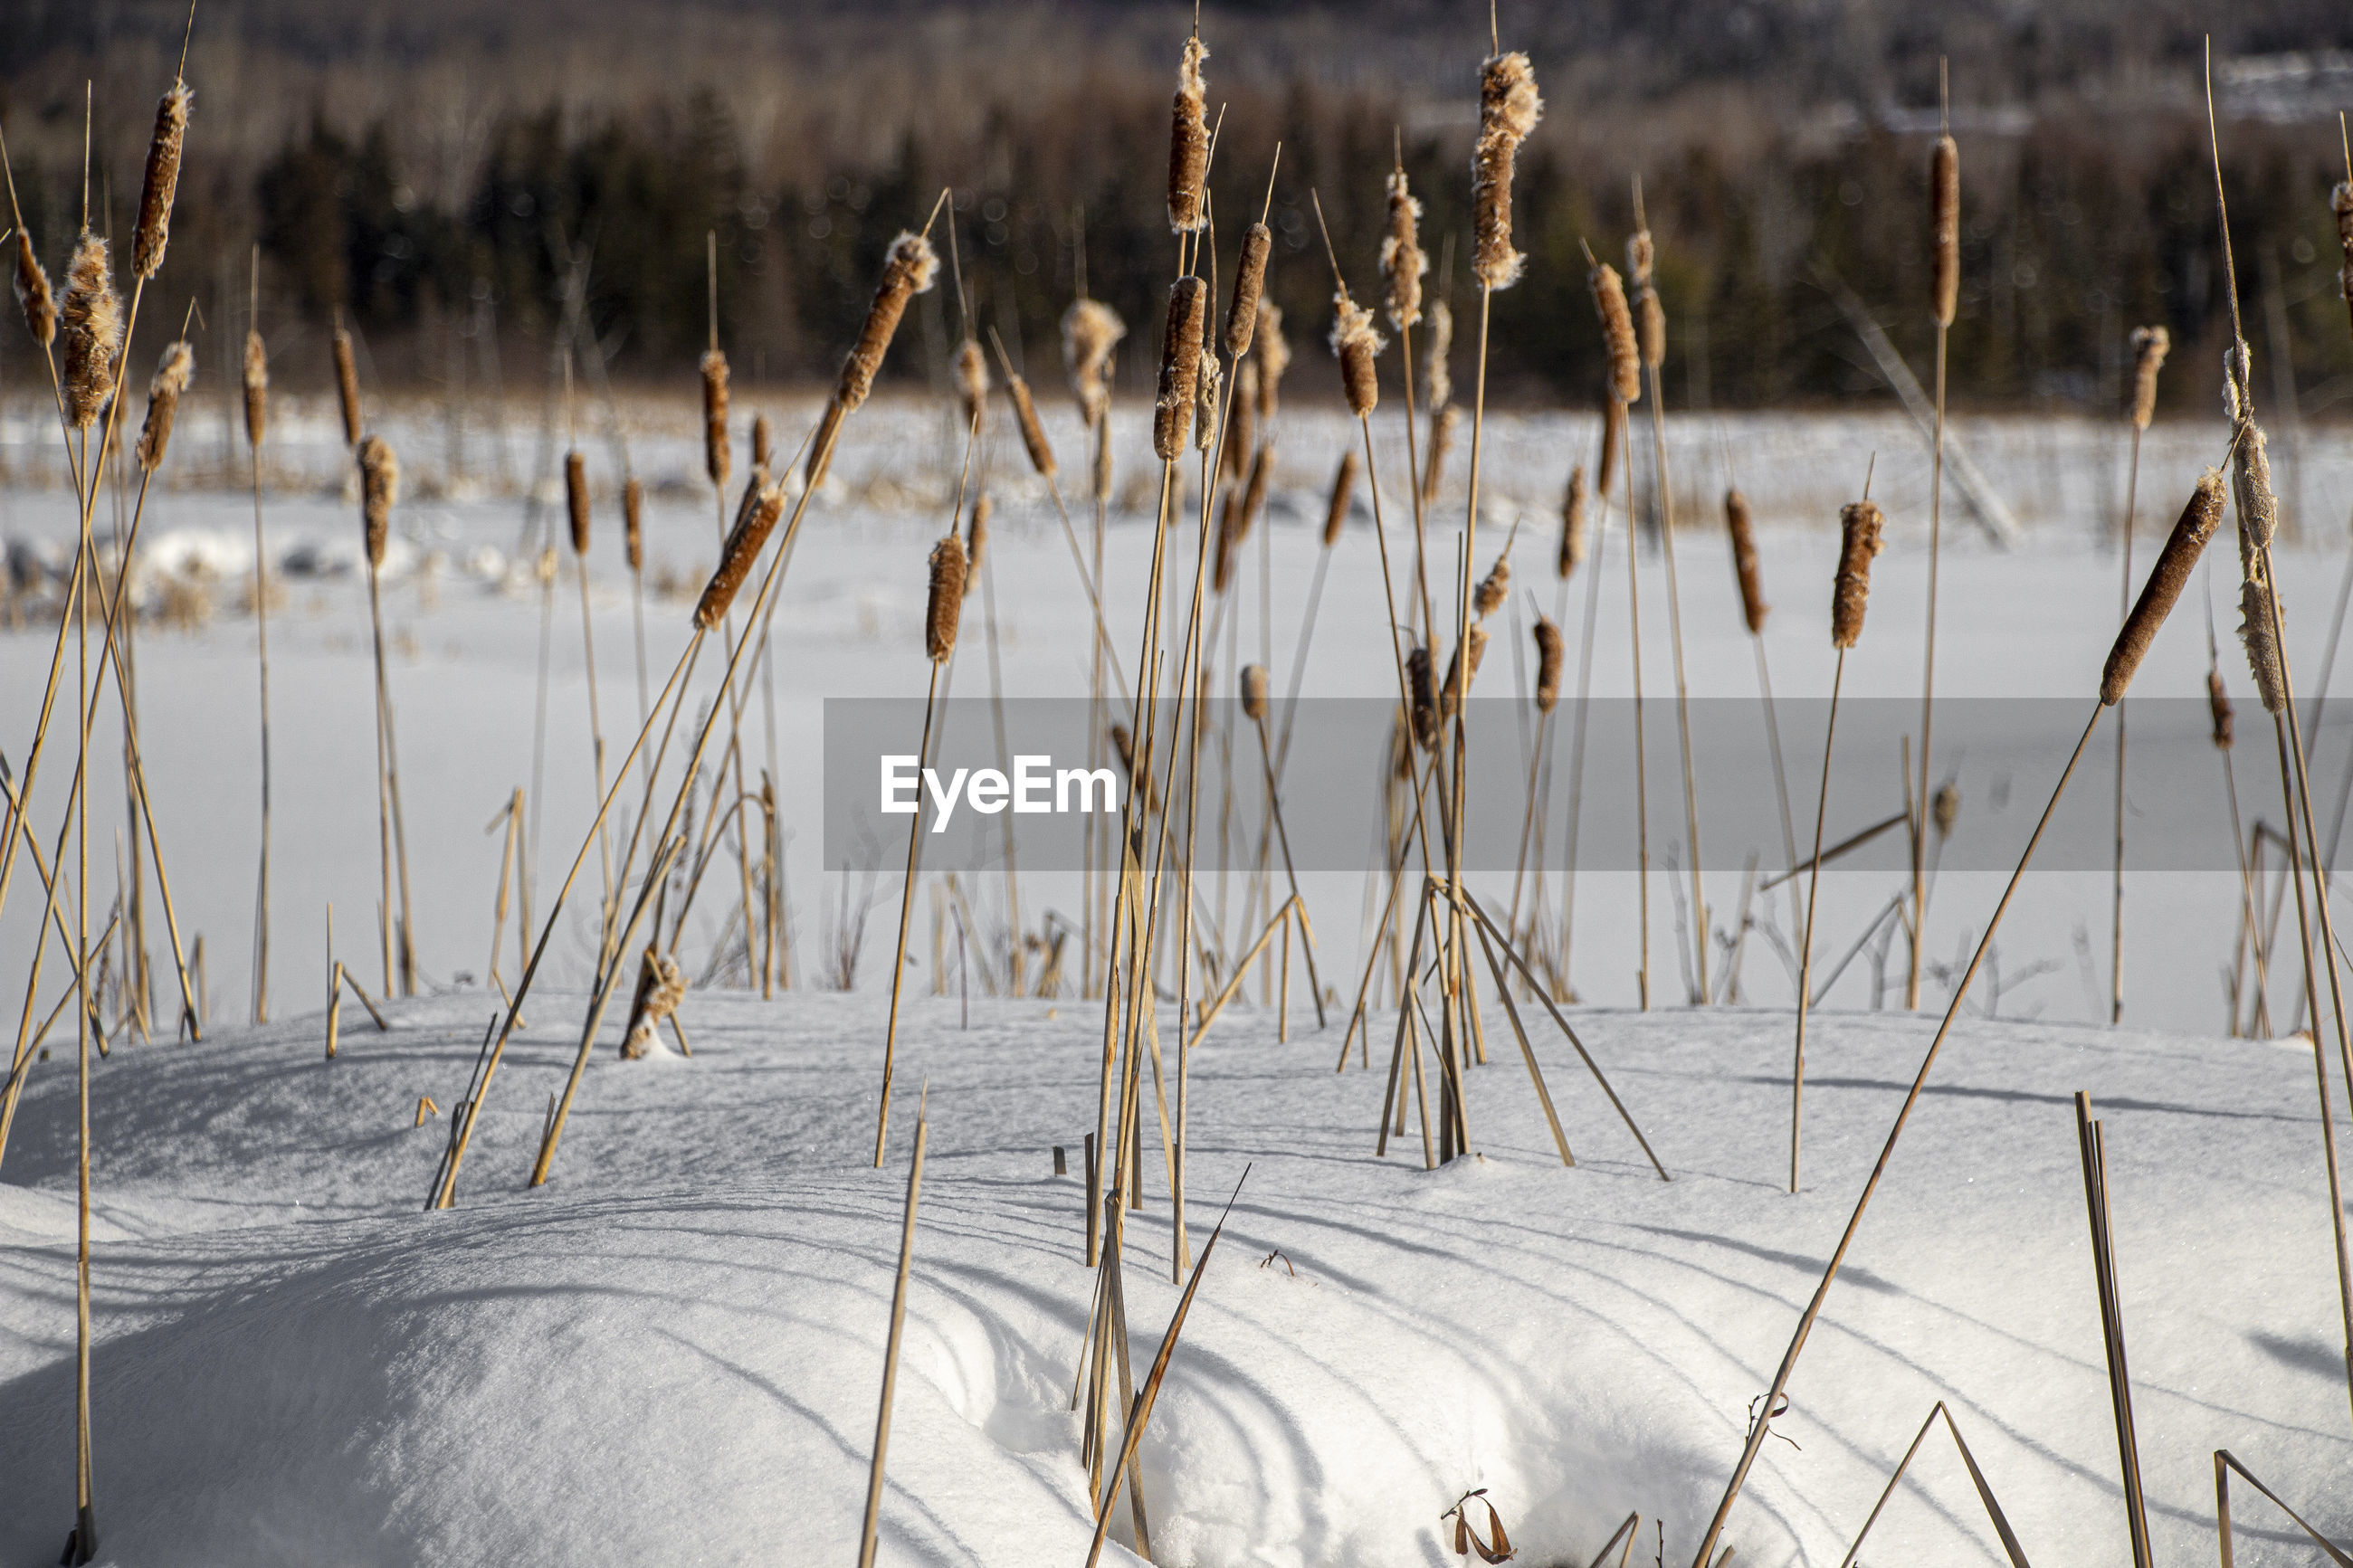 Close-up of dry plants in lake during winter